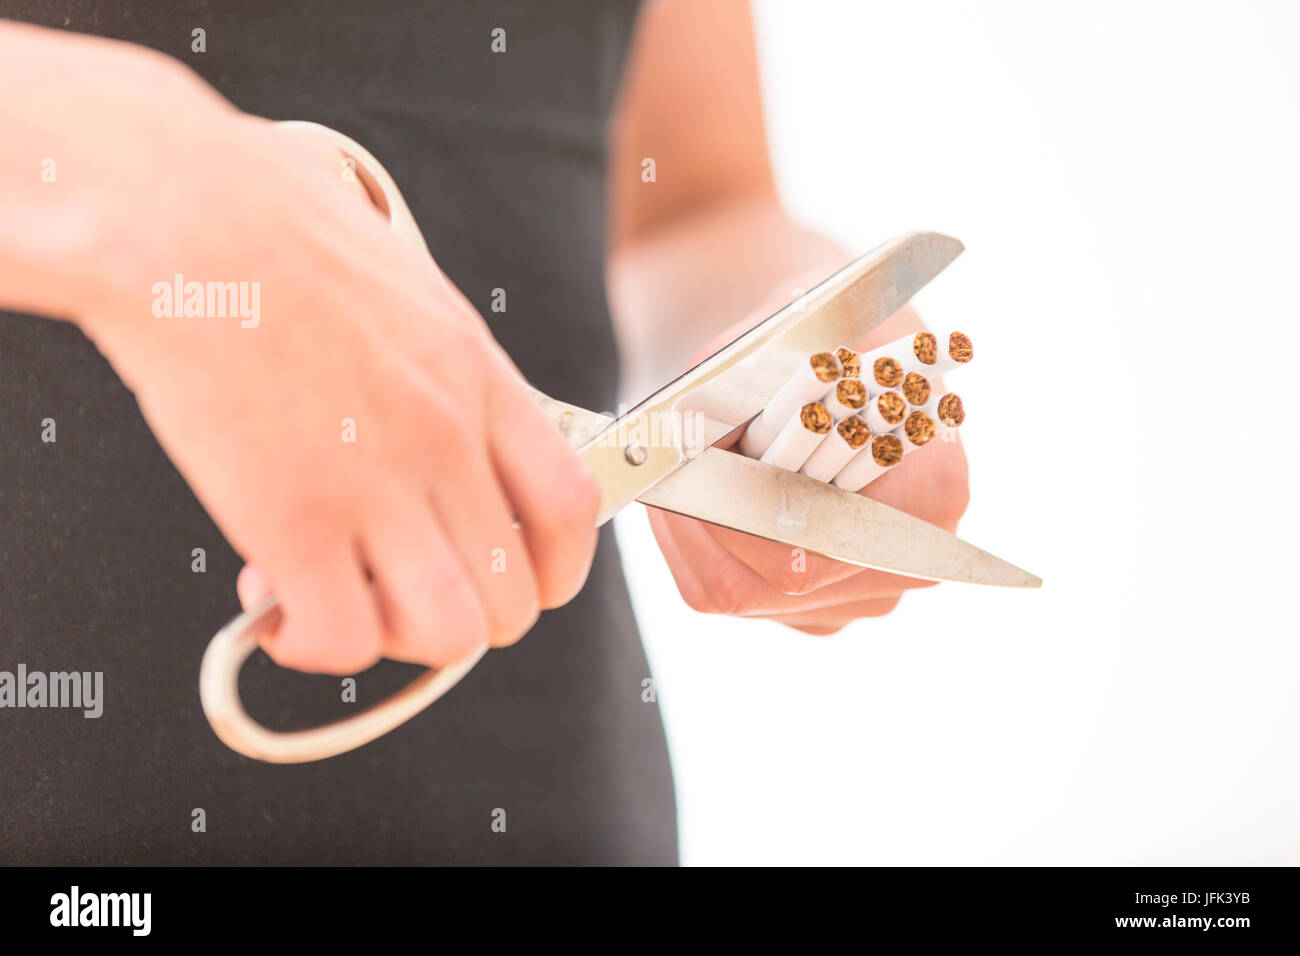 Quit Smoking. Closeup Of Woman Hands Cutting Cigarettes - Stock Image